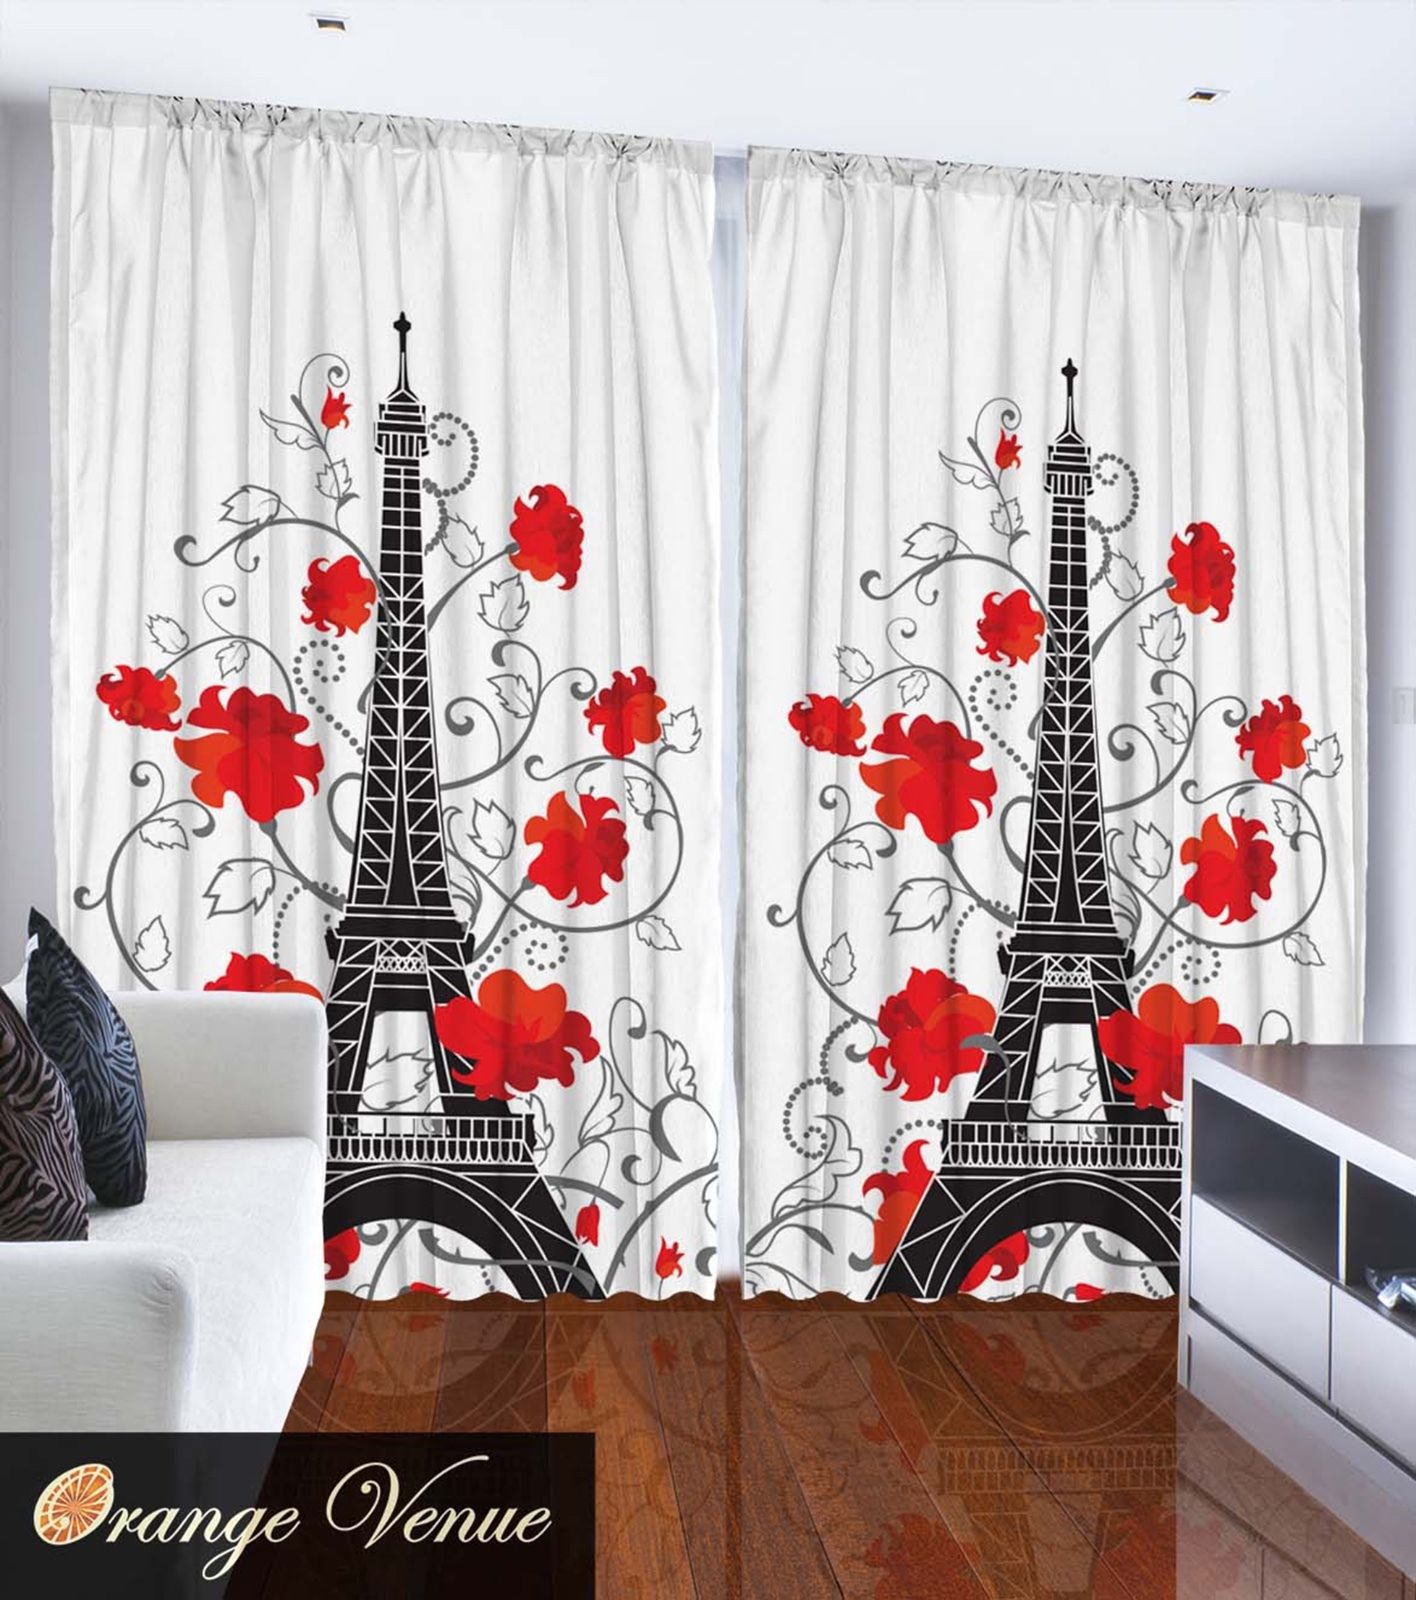 Eiffel Tower Paris City Decor Bedroom Accessories French Style Curtain 2 Pane